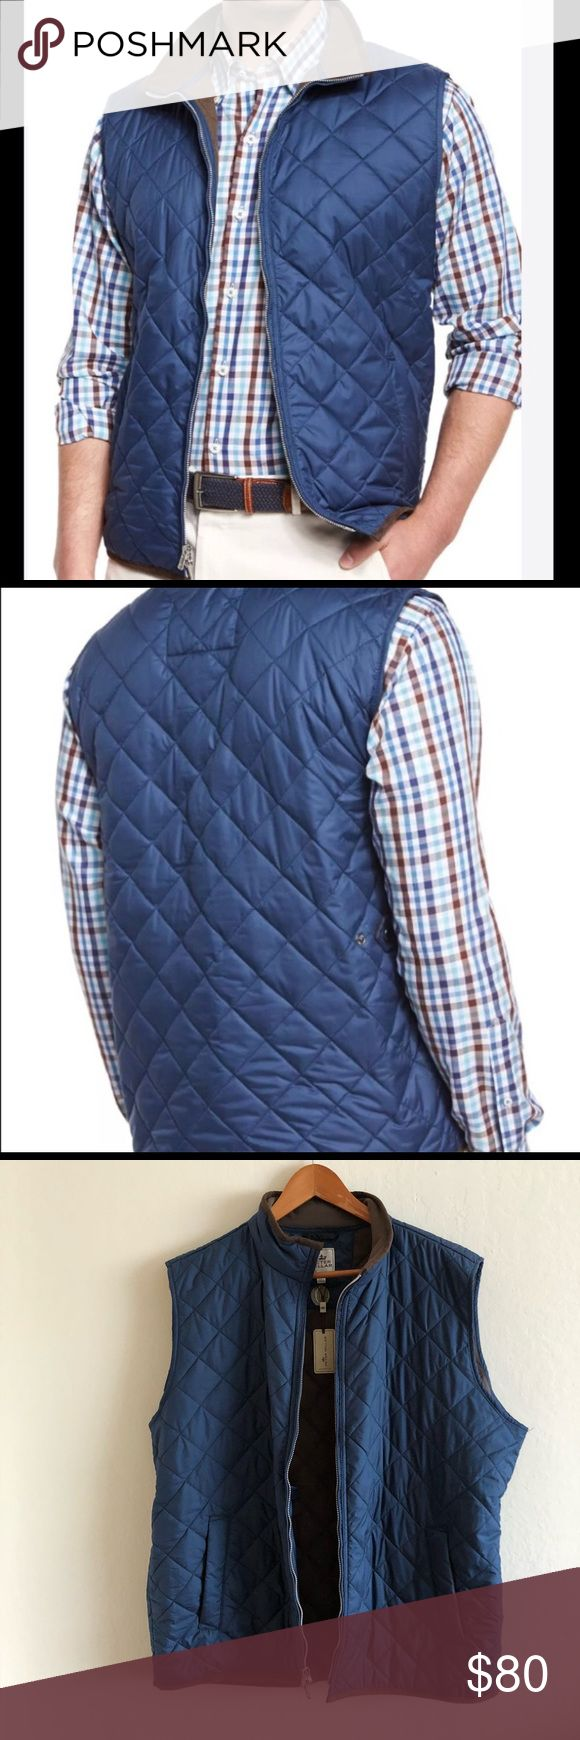 NWT Peter Millar blue quilted zip up vest Zip ups